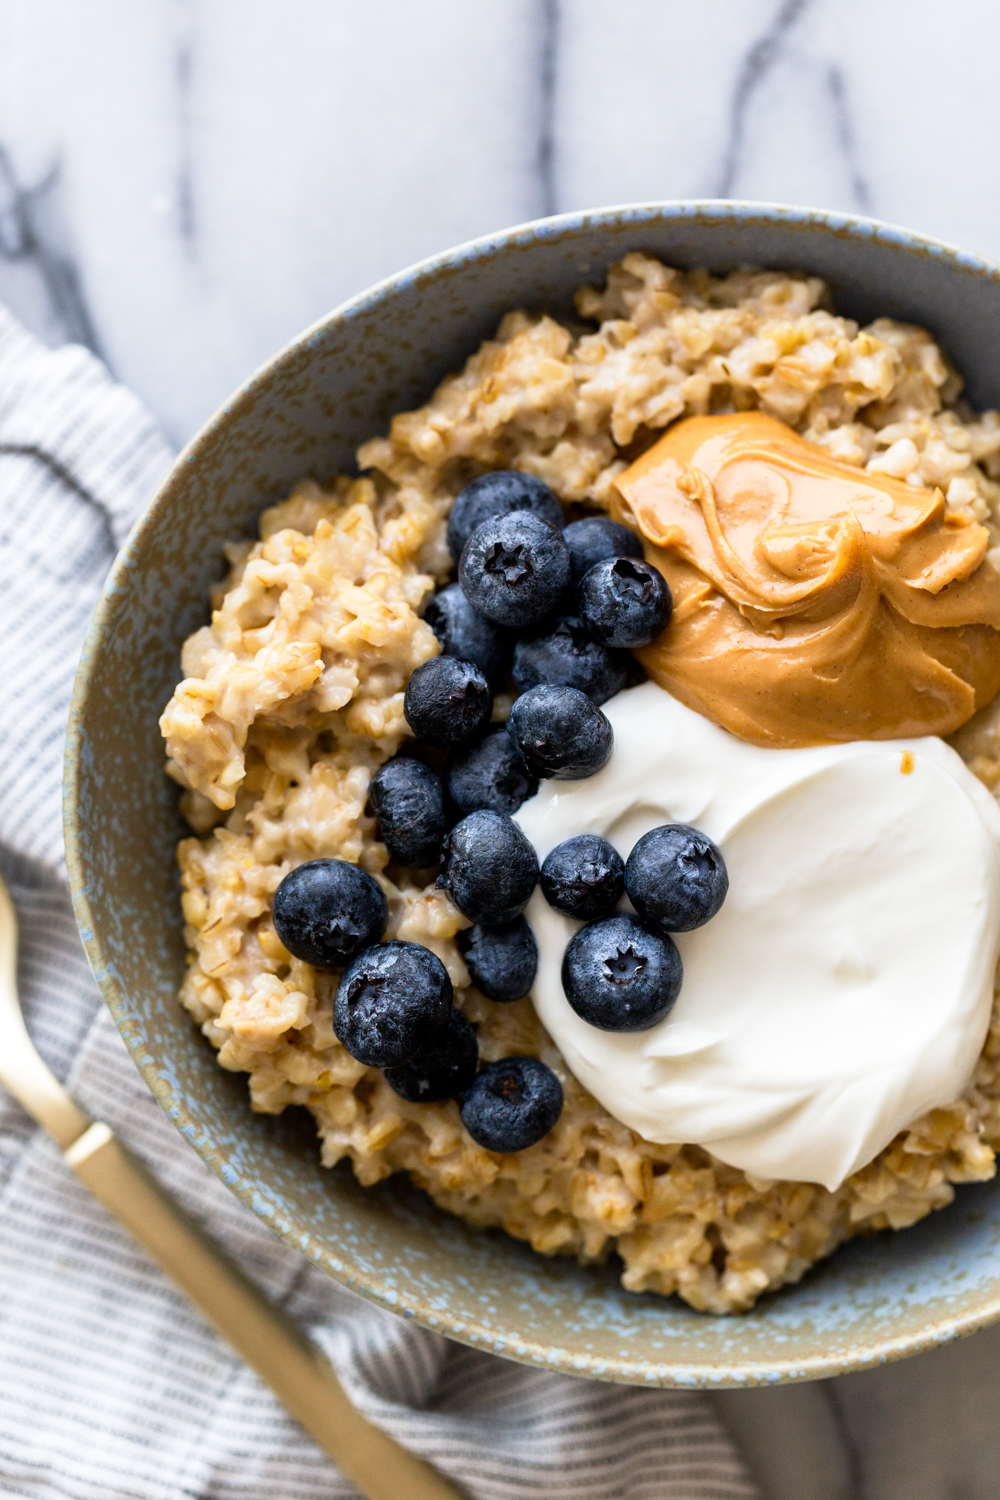 Oatmeal topped with yogurt, peanut butter and blueberries in a light blue bowl with a gold spoon